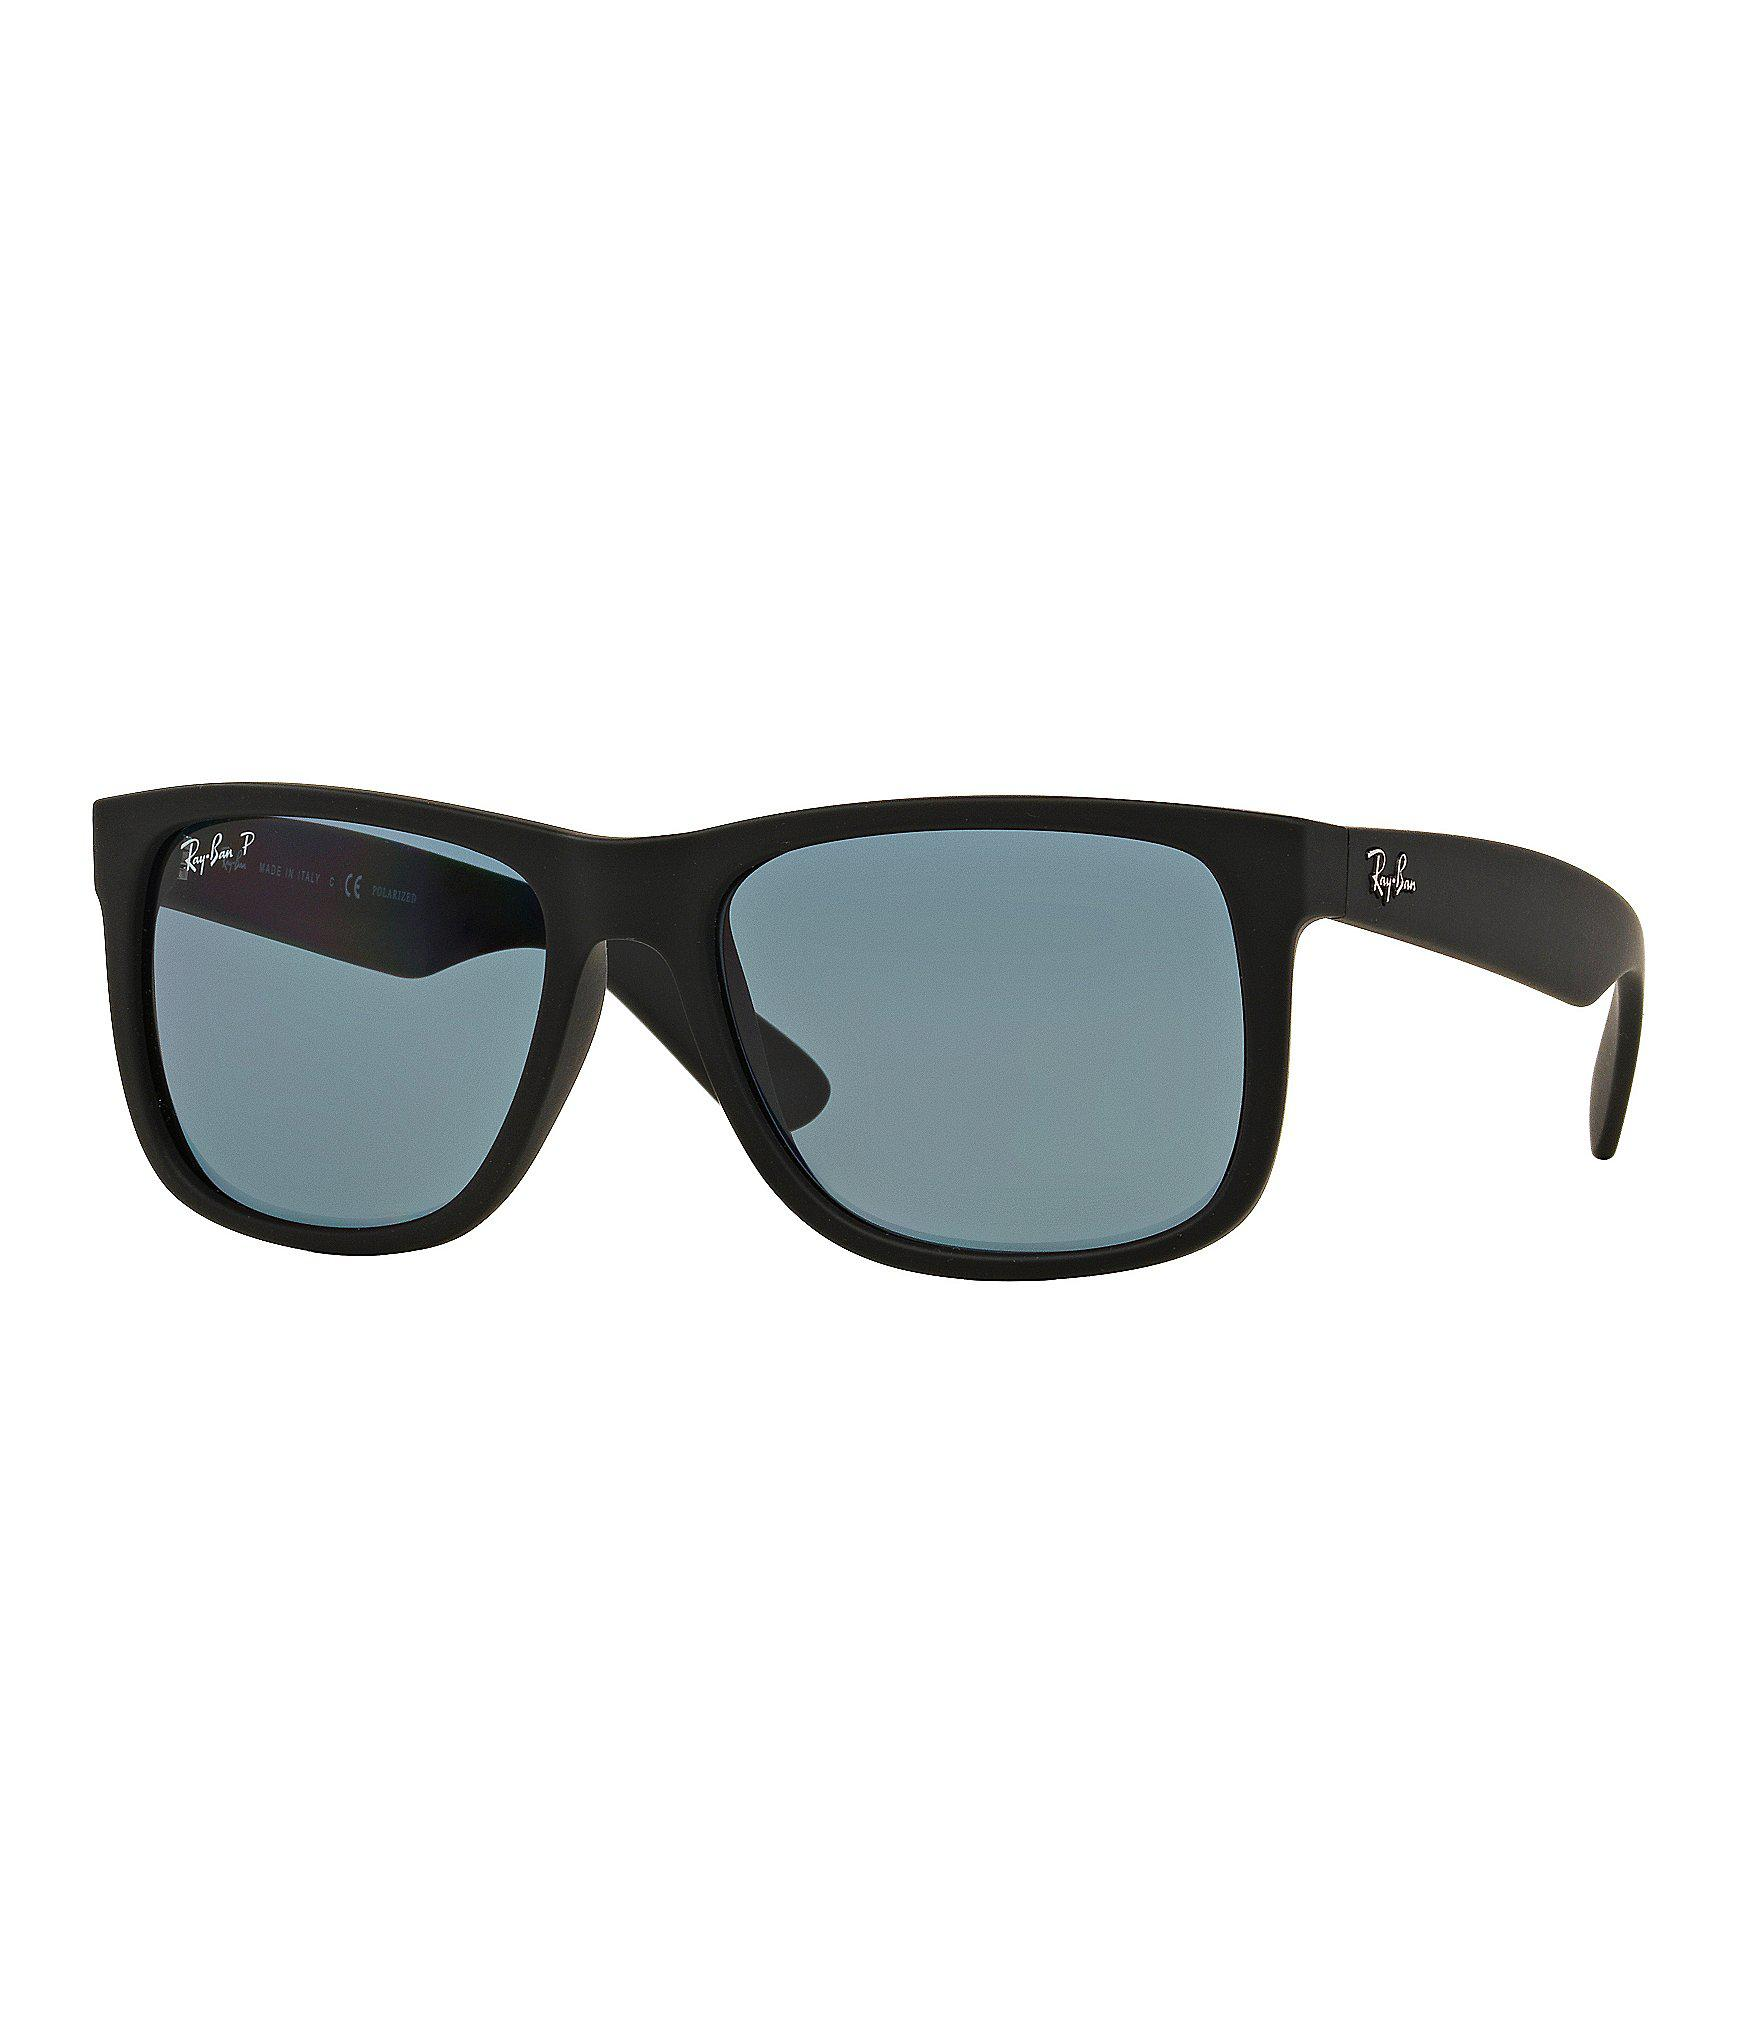 46bcb77f51 Lyst - Ray-Ban Justin Polarized Sunglasses in Black for Men